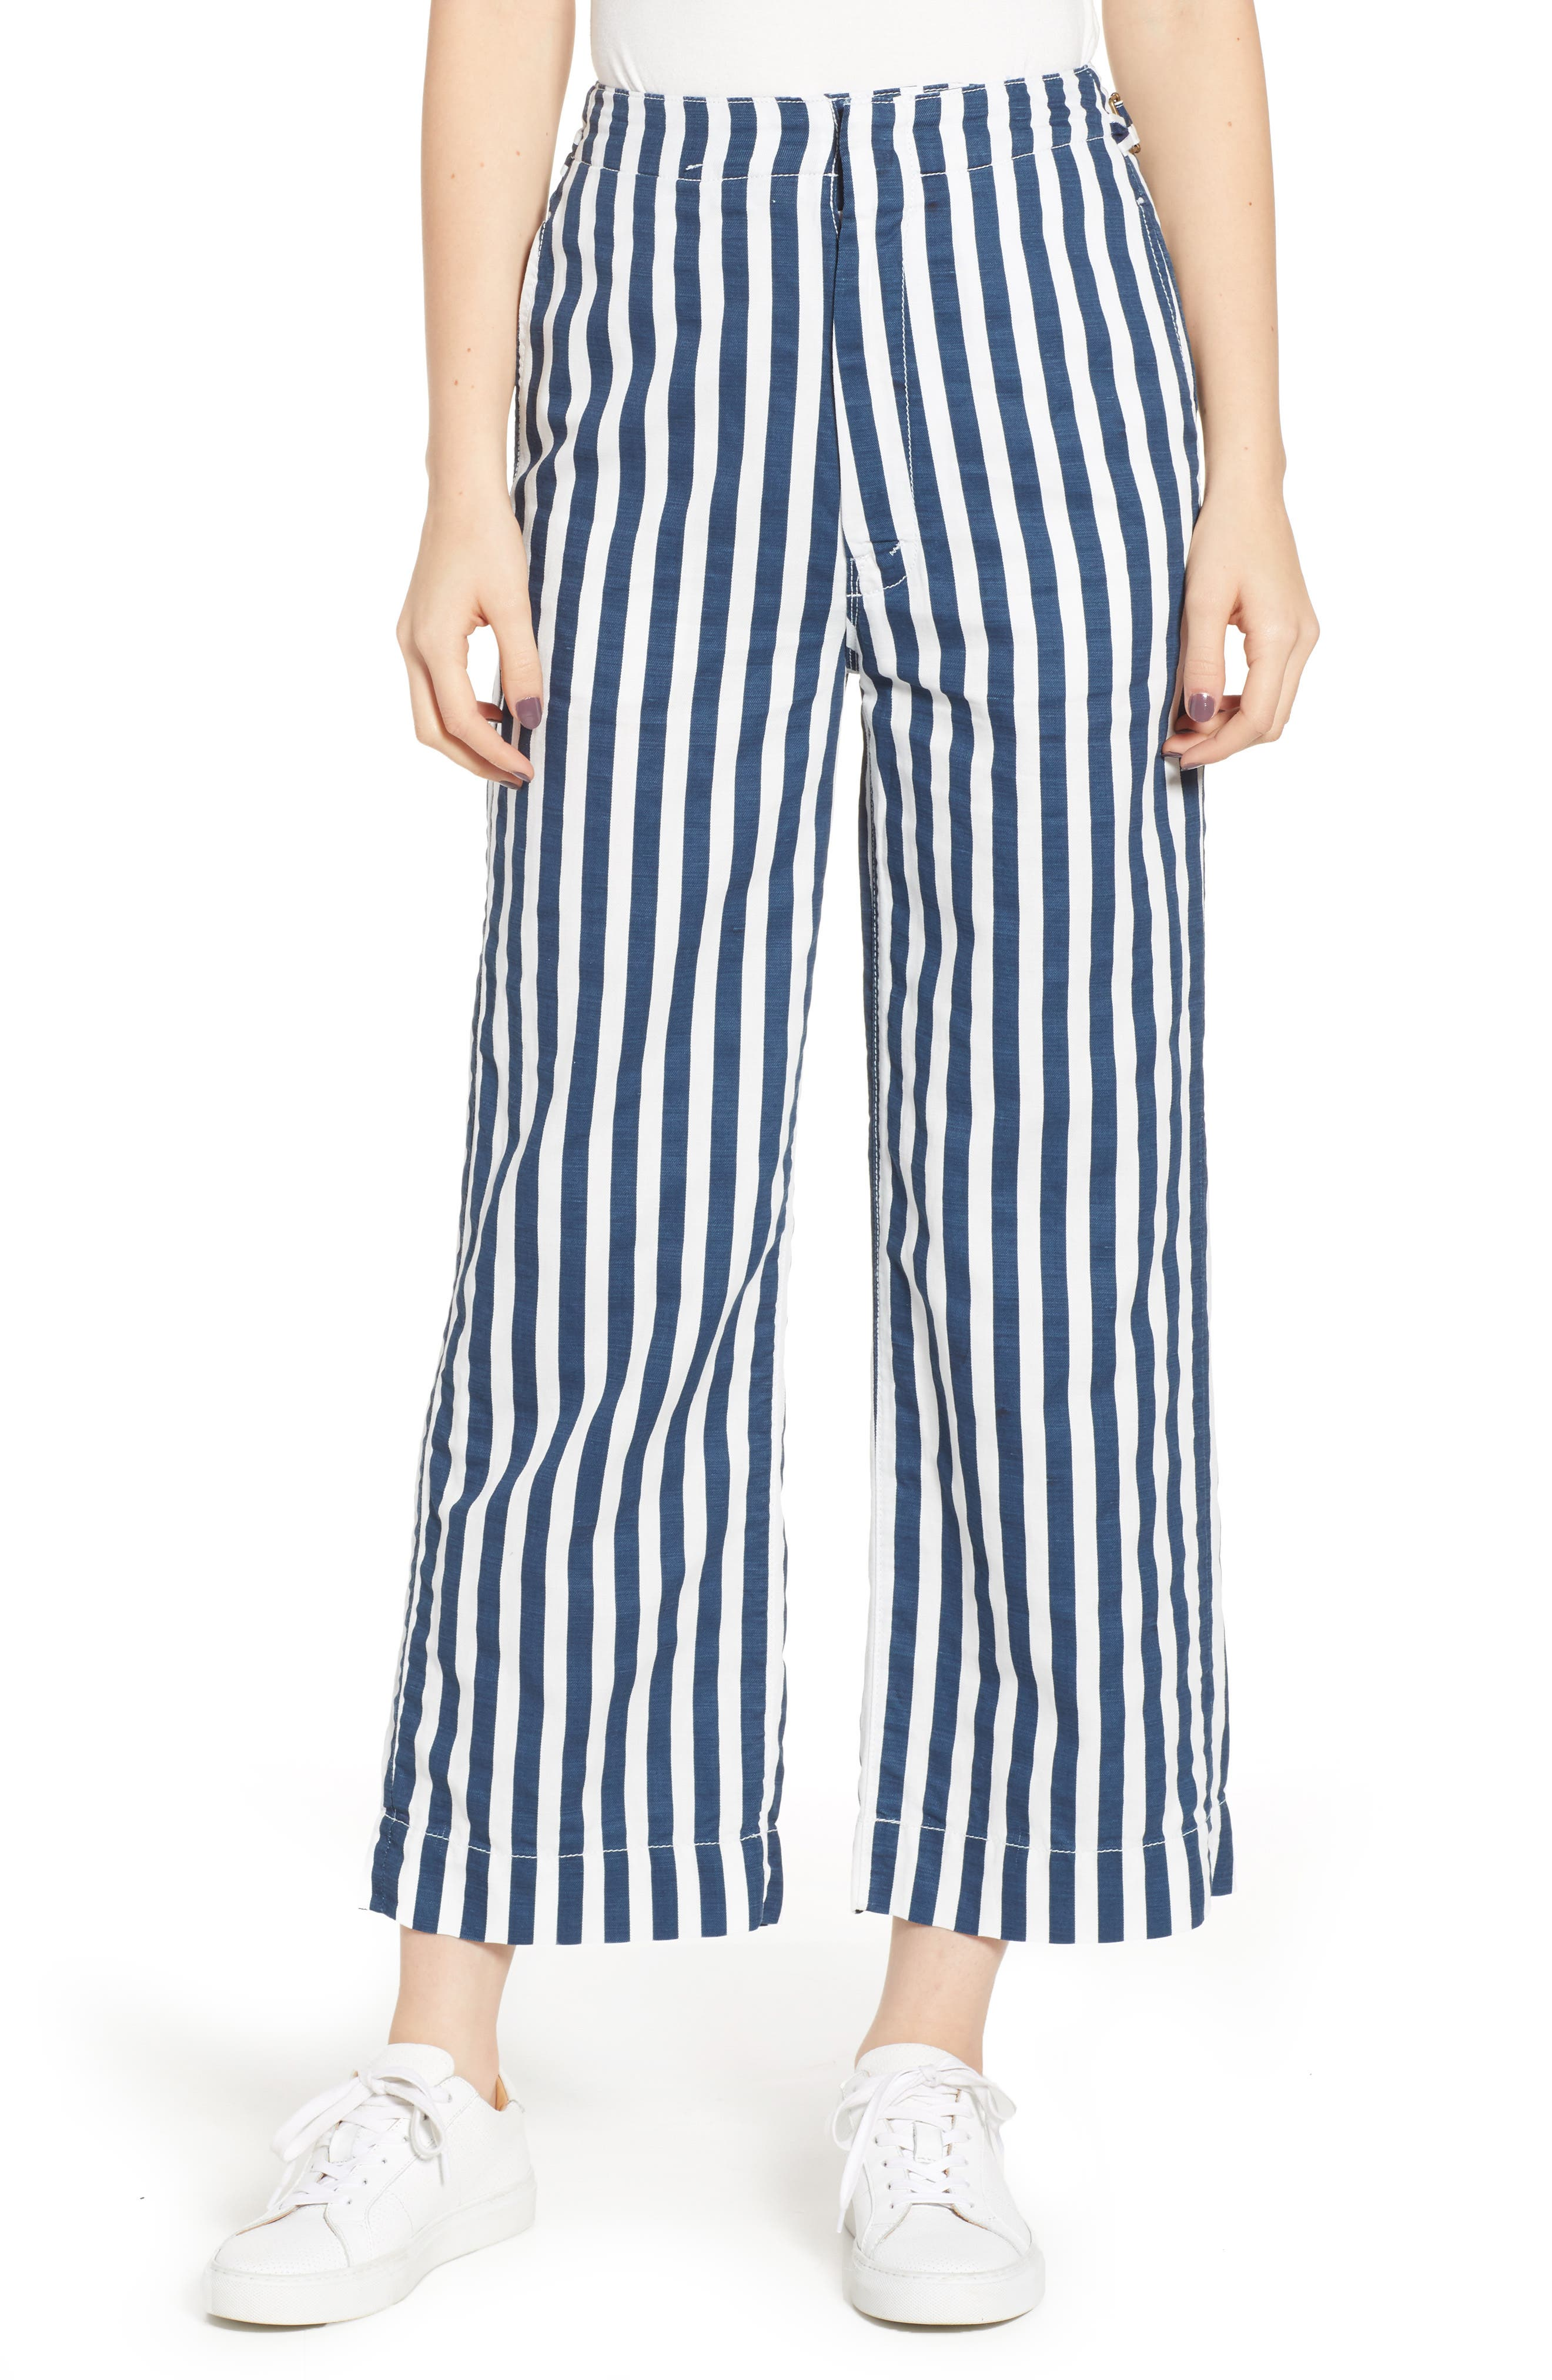 MOTHER The Cinch Greaser Stripe Pants, Main, color, 110